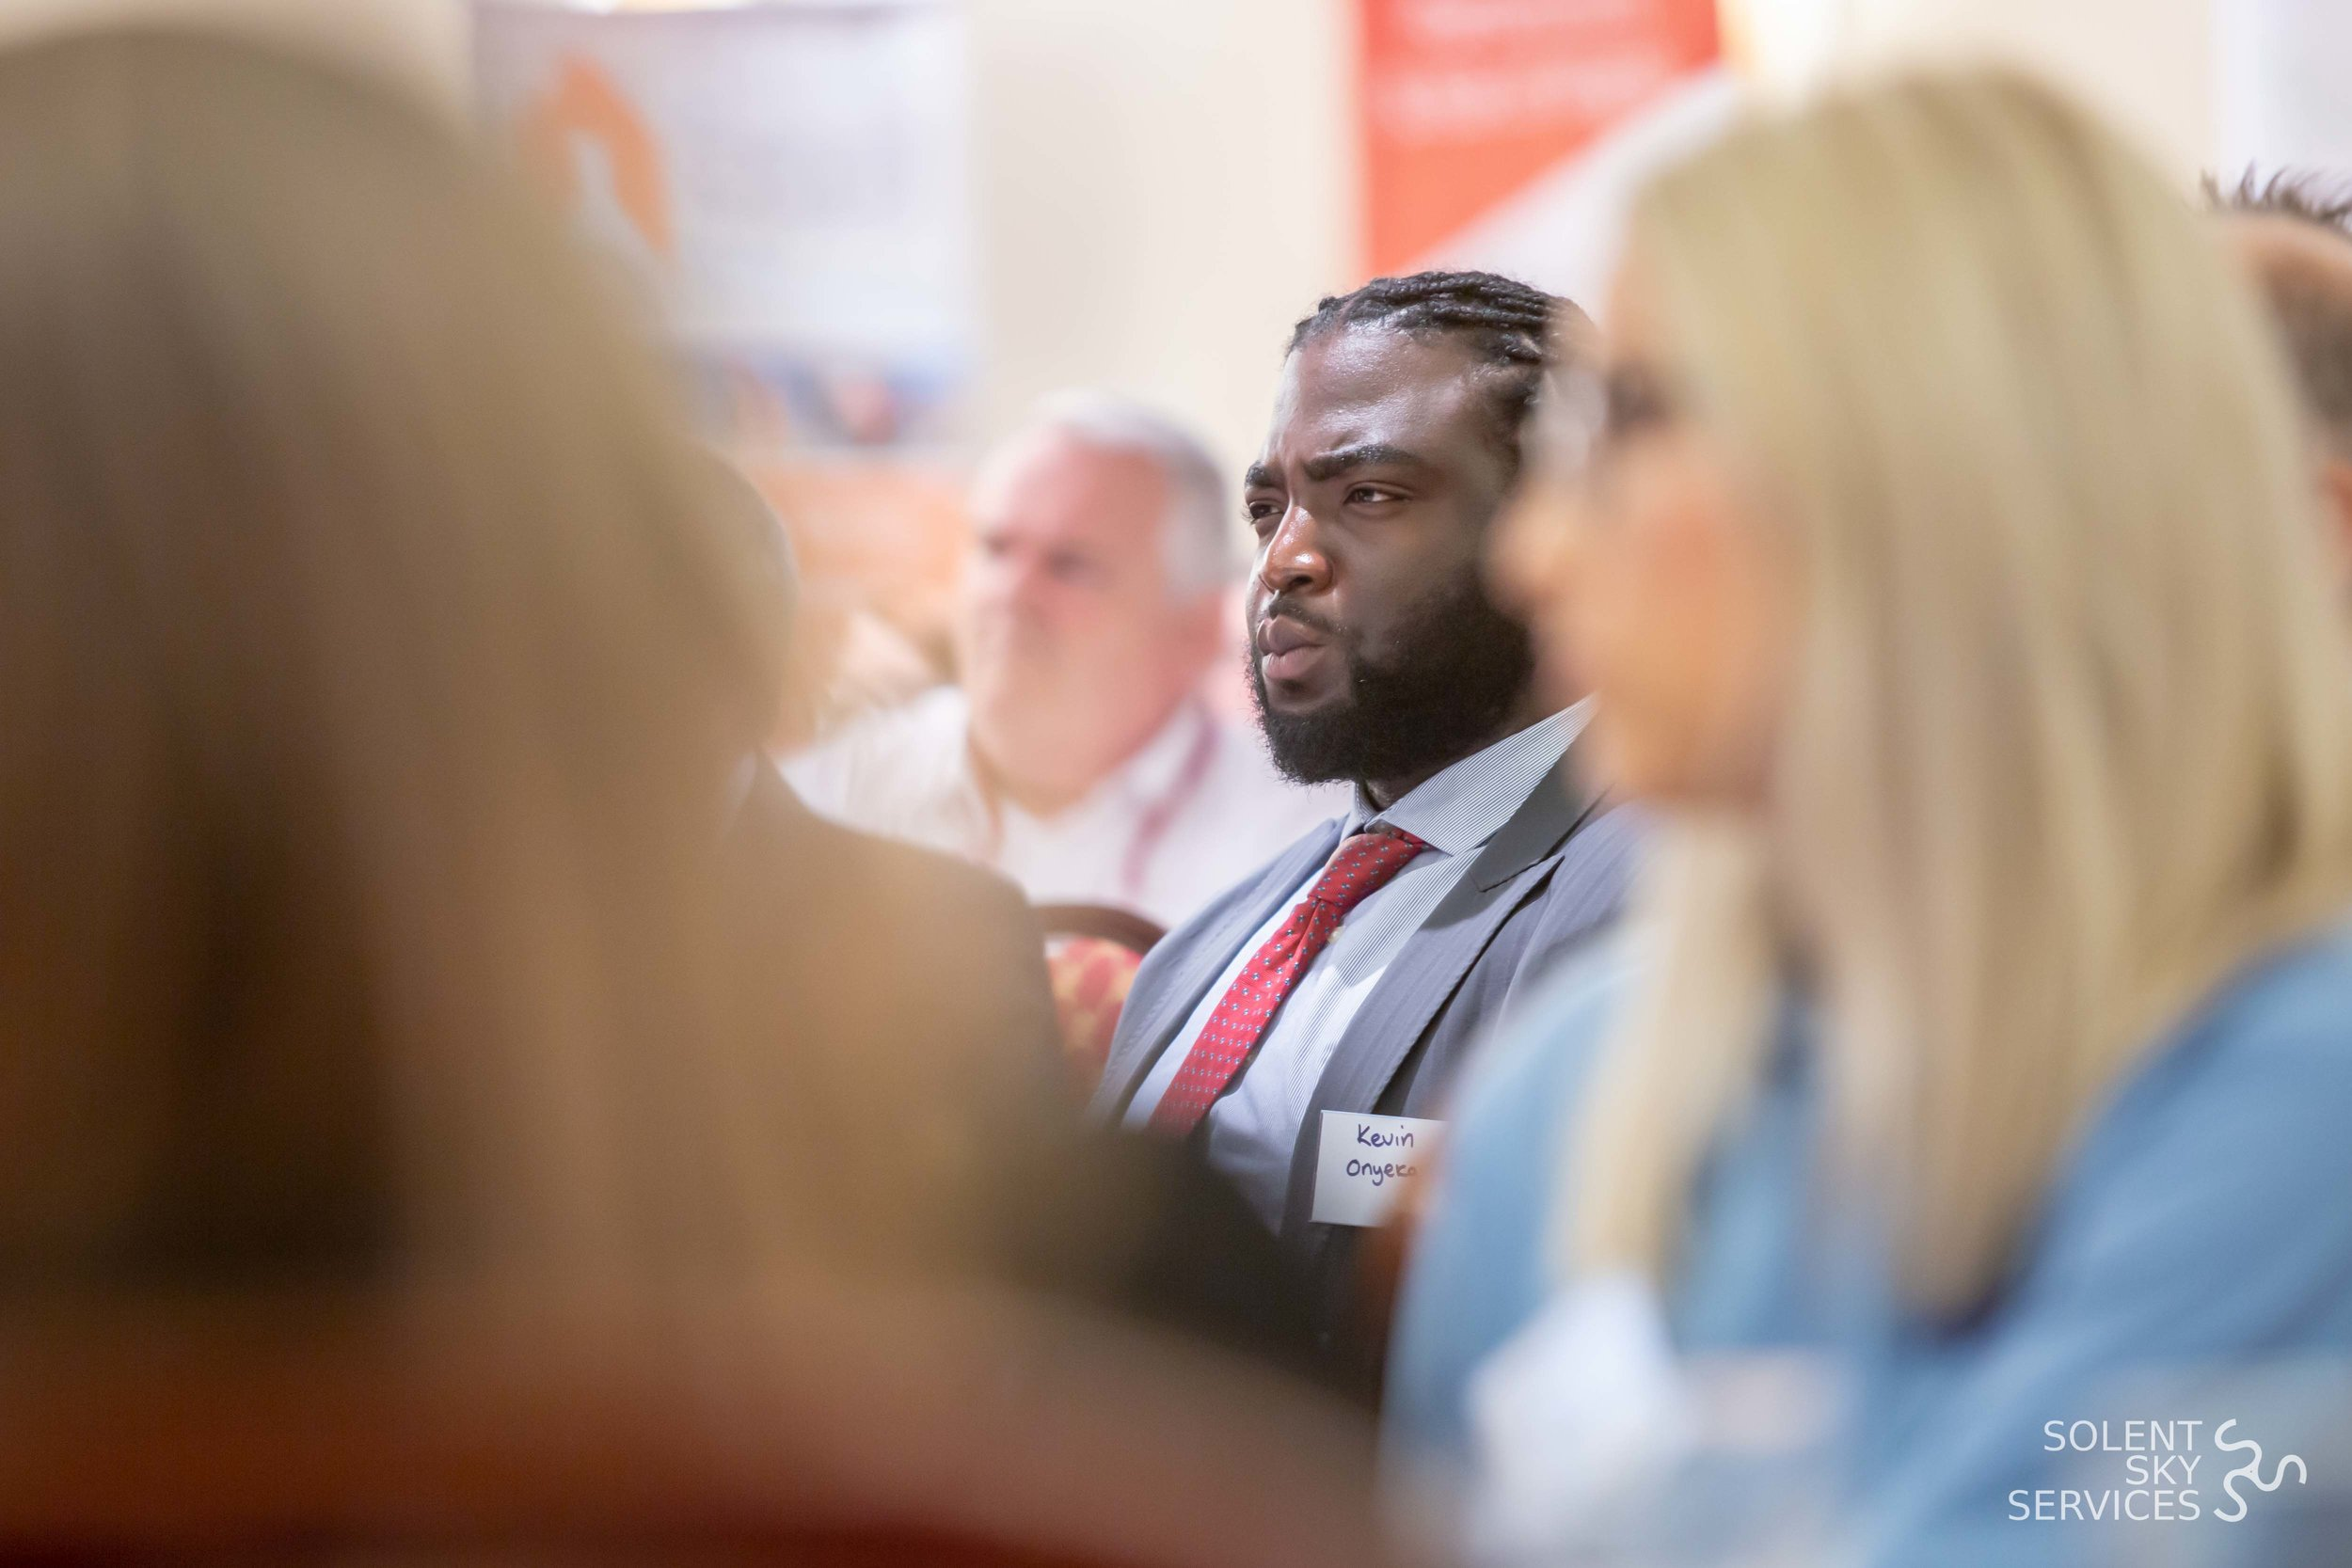 Synergy Success Networking Event #2 - Solent Sky Services-85.JPG